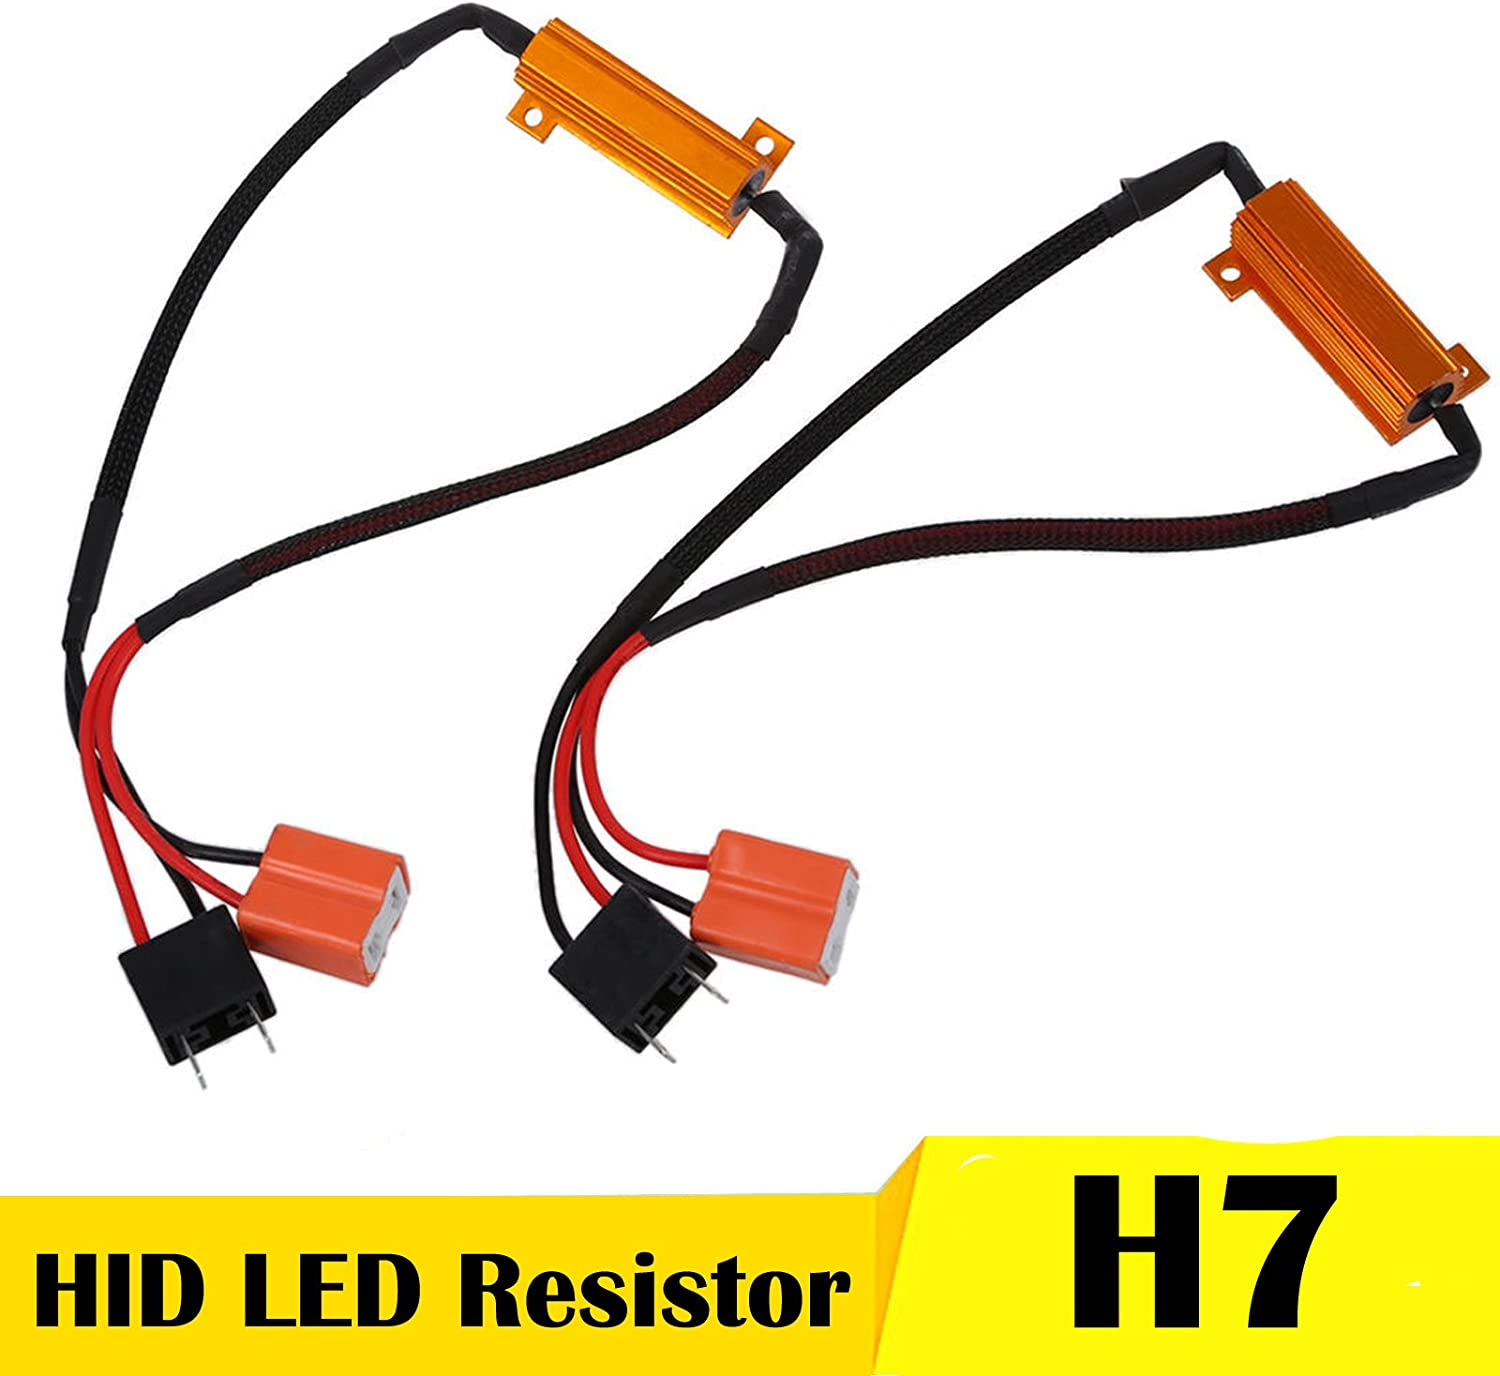 2 Pairs Fix Hyper Flash, Warning Cancellor XtremeVision 50W 6Ohm LED Load Resistors for LED Turn Signal Lights or LED License Plate Lights